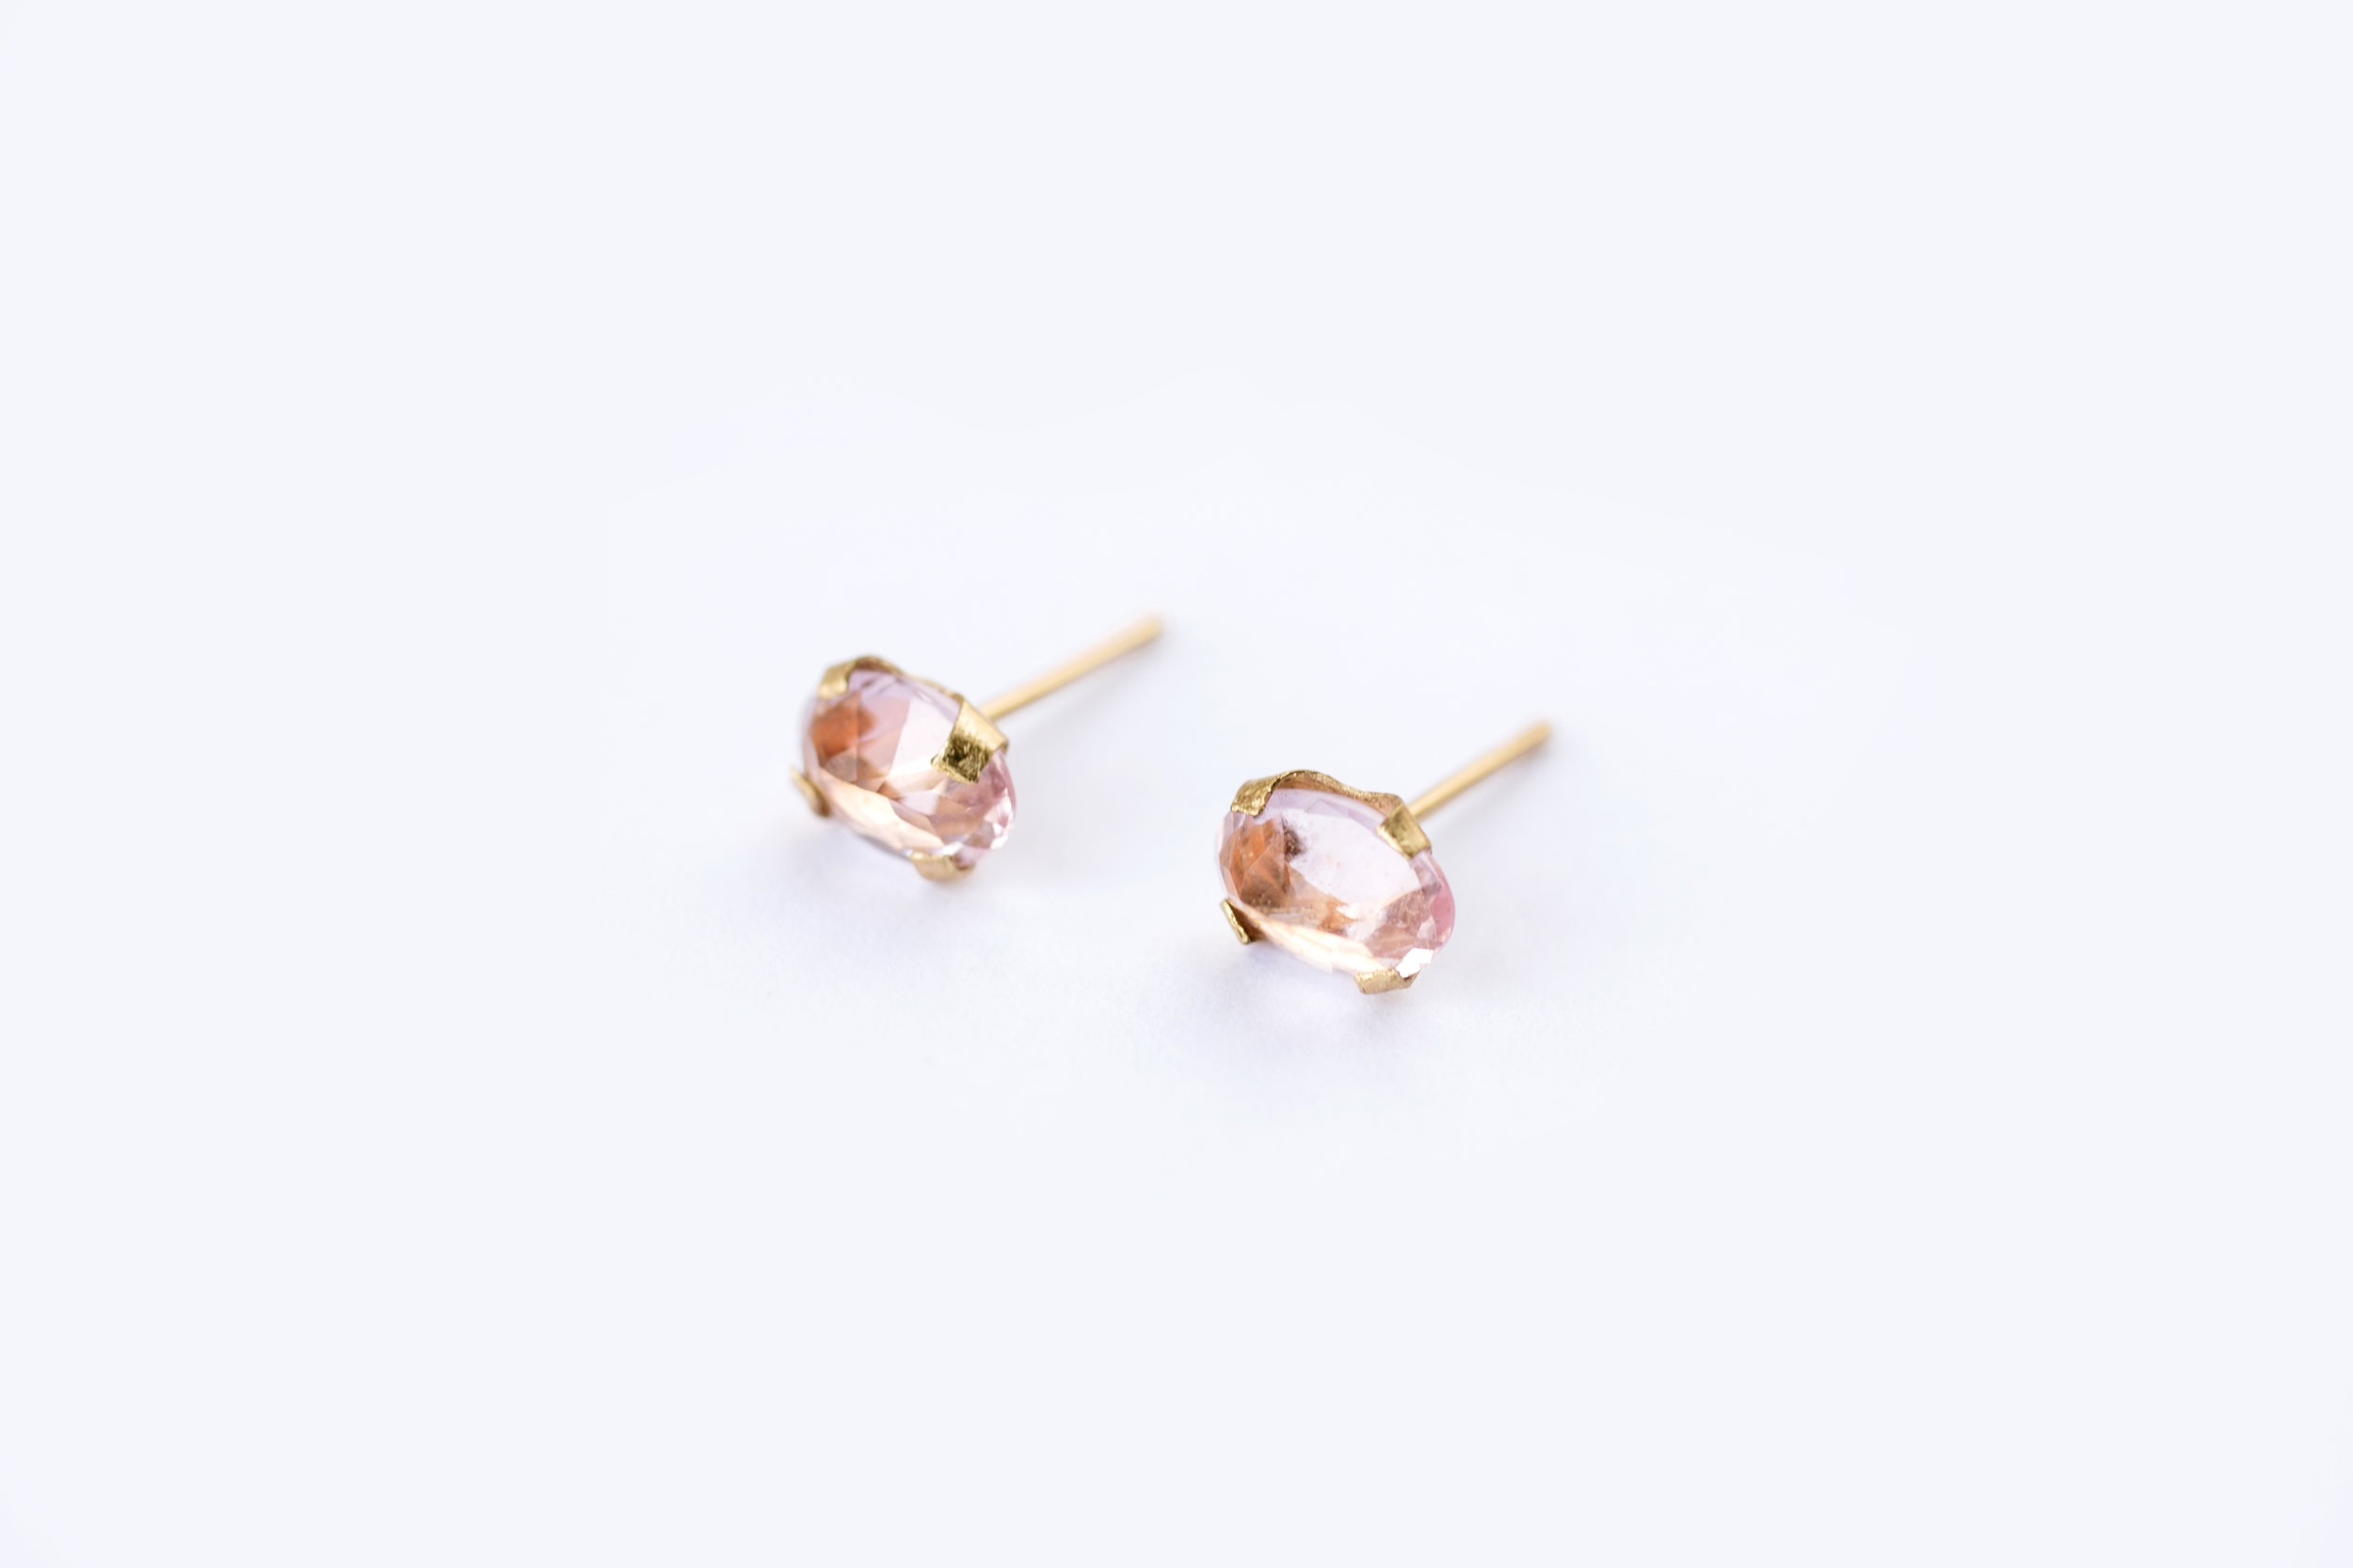 morganite pin gold styles stud this pinterest year earrings rose